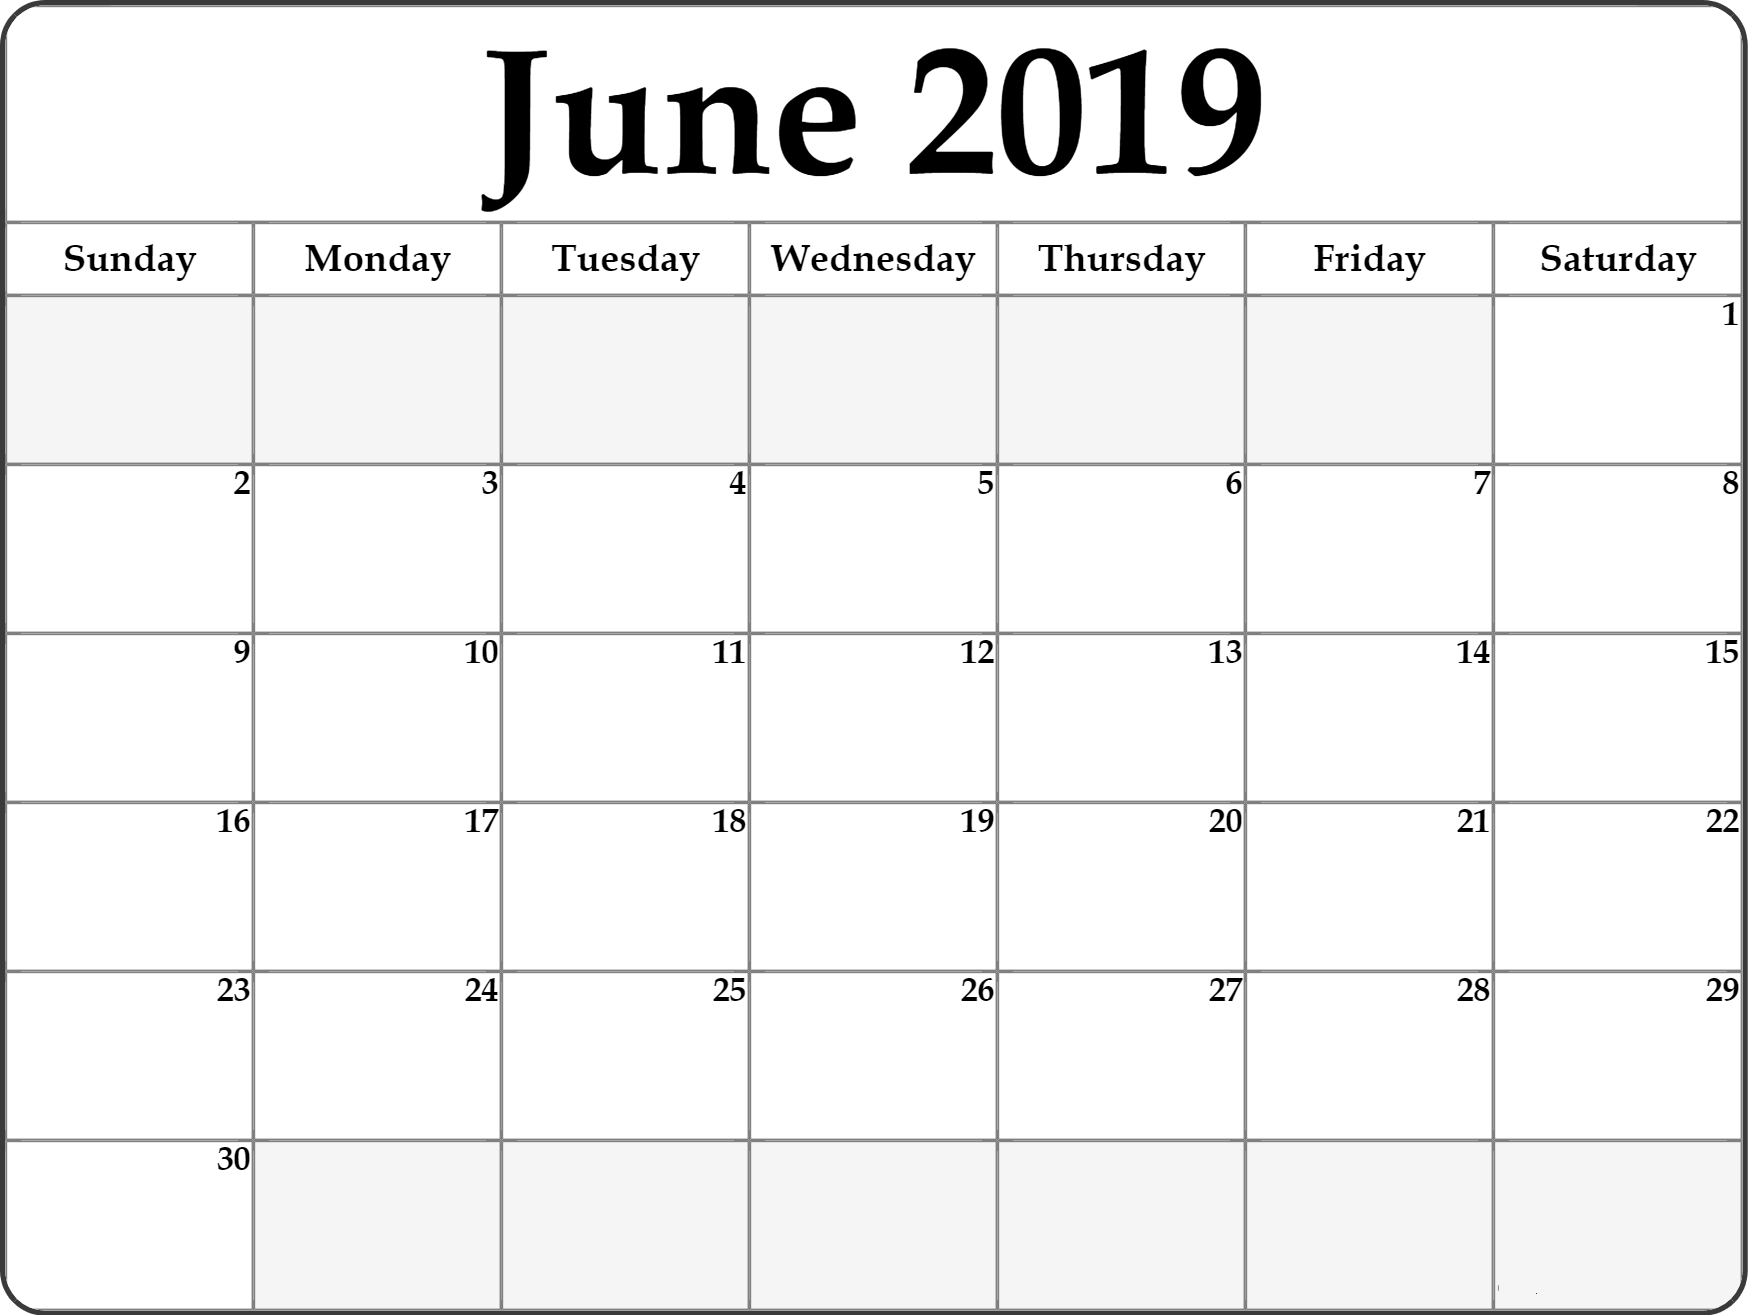 Free Printable June 2019 Calendar #portrait | June 2019 Calendar inside Free Calendar Templates Printable